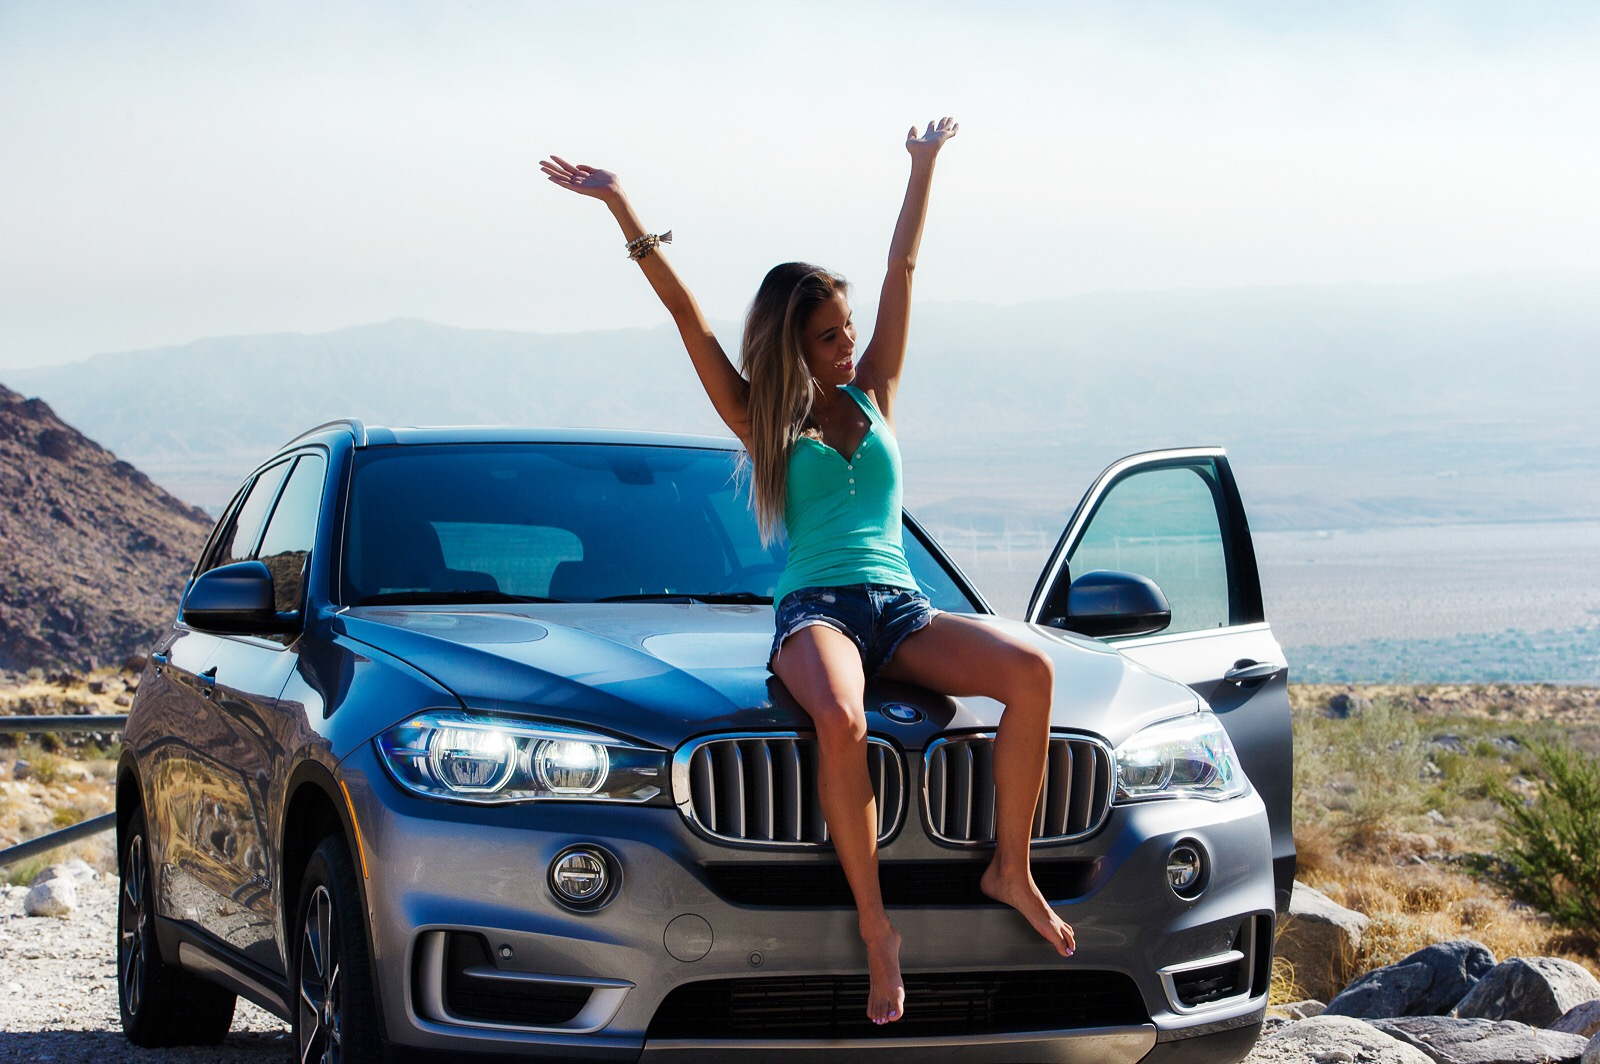 first bmw car in palm springs